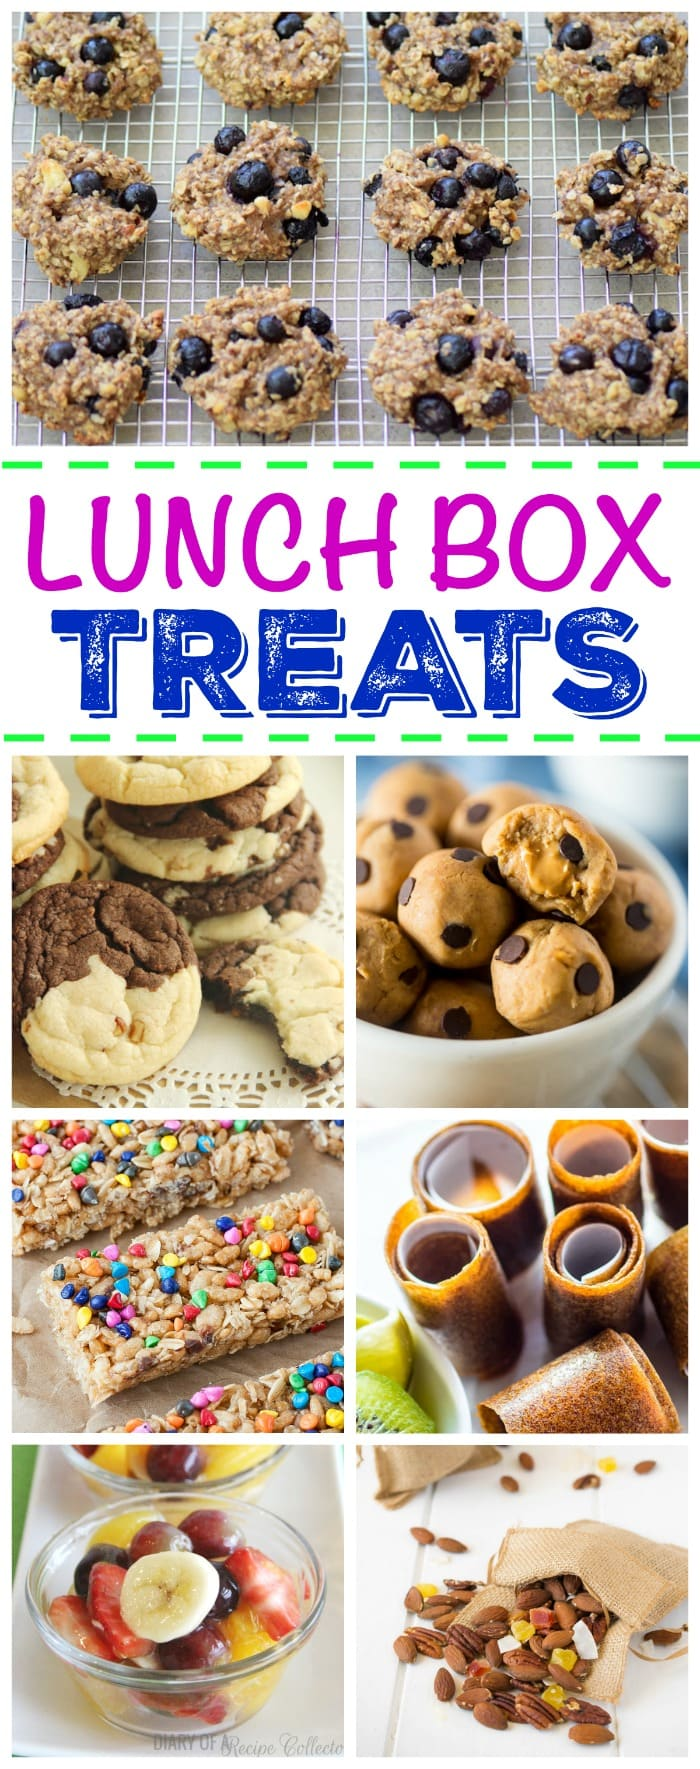 Lunch Box Treats - Looking for school lunch ideas? Check out this great collection of homemade lunch box treats!